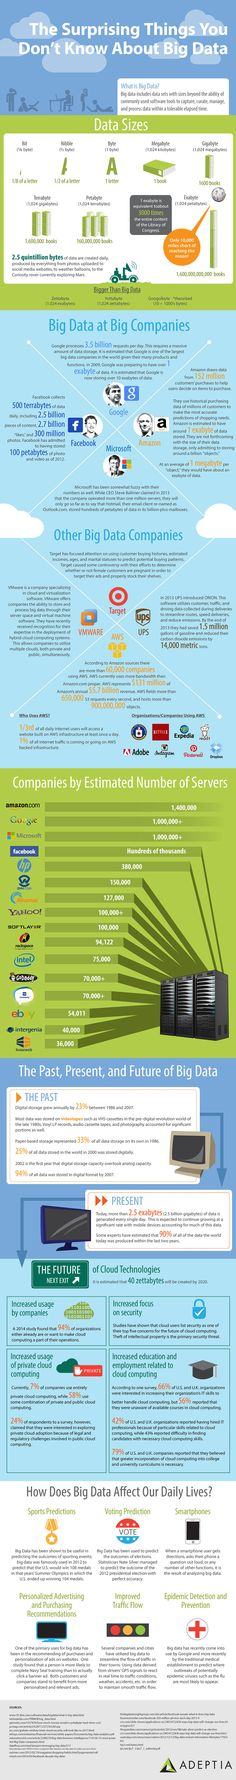 Surprising Big data Facts Infographic